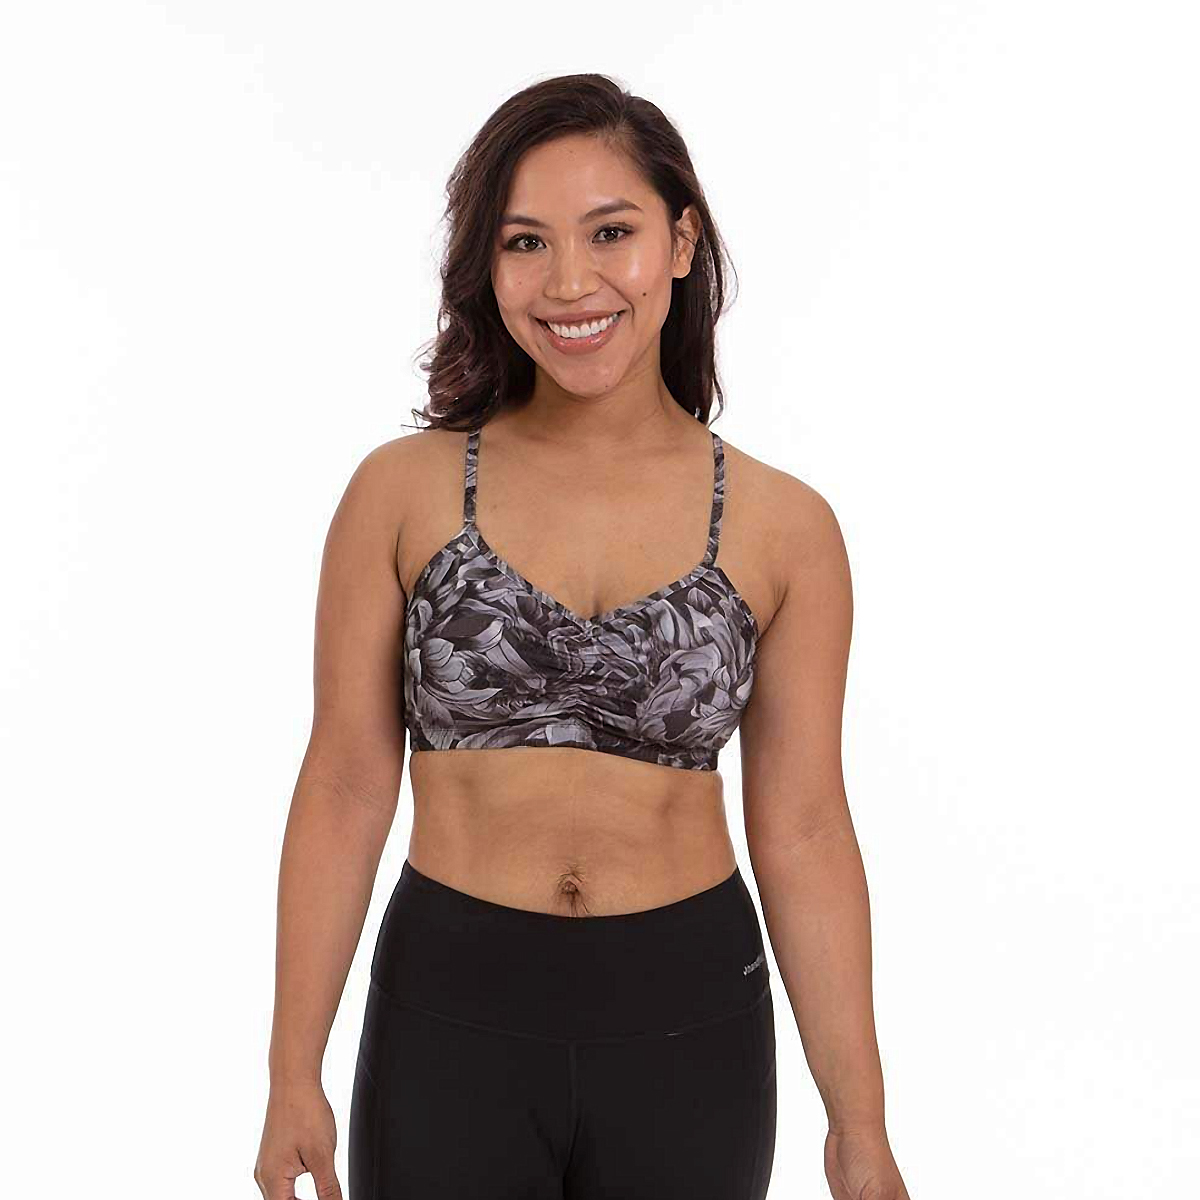 Women's Handful Adjustable Bra  - Color: Petal To The Metal - Size: XS, Petal To The Metal, large, image 1